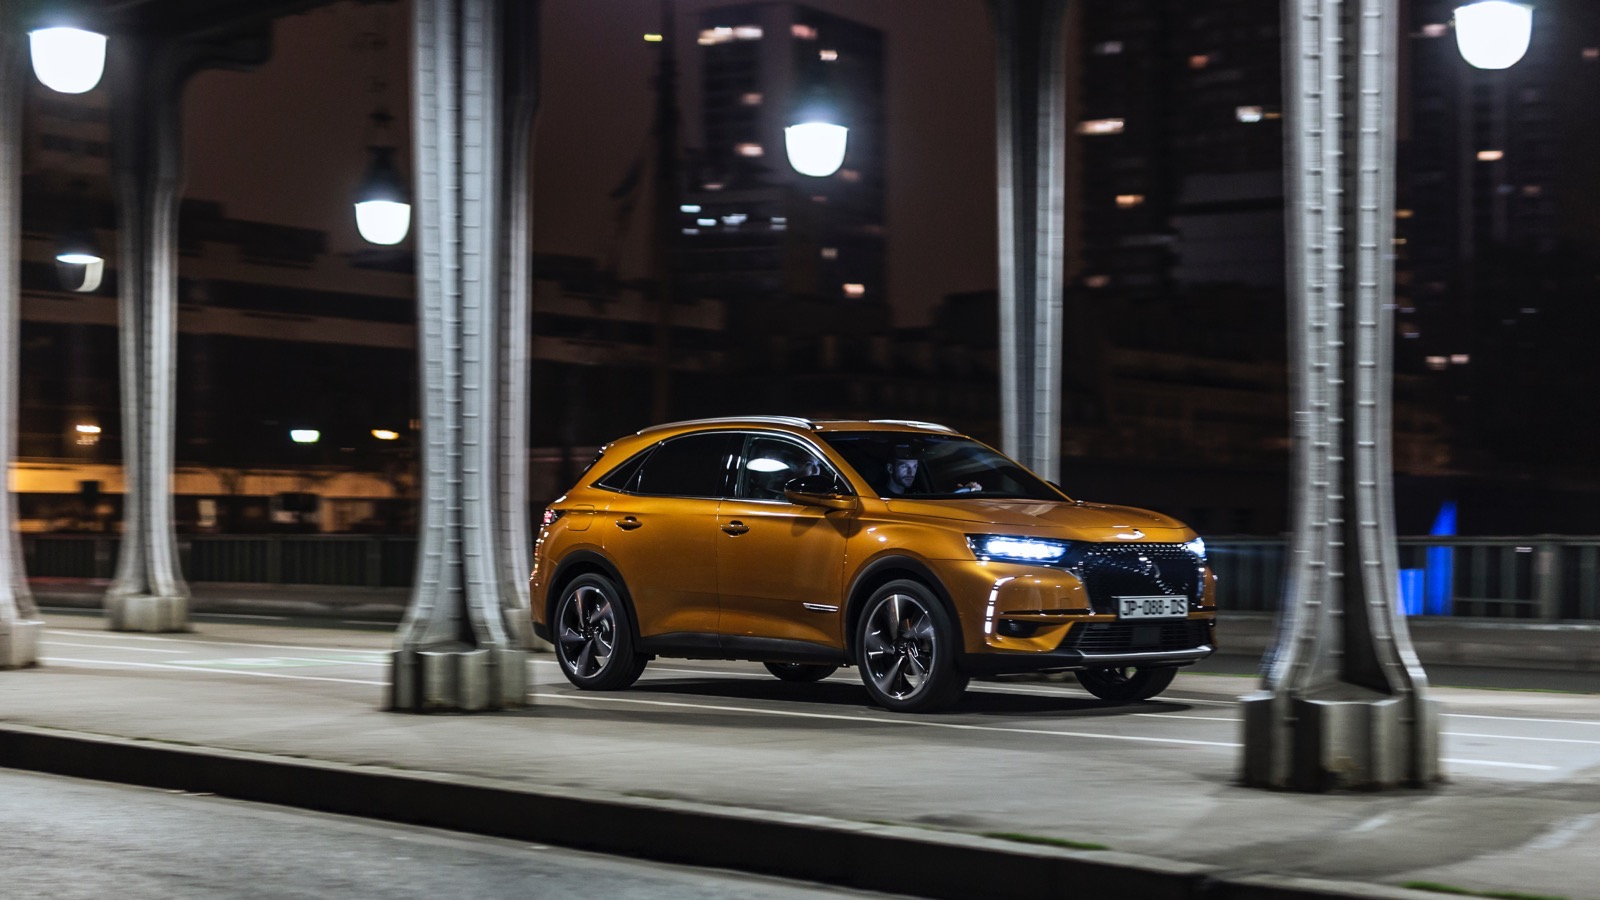 DS_7_Crossback_22